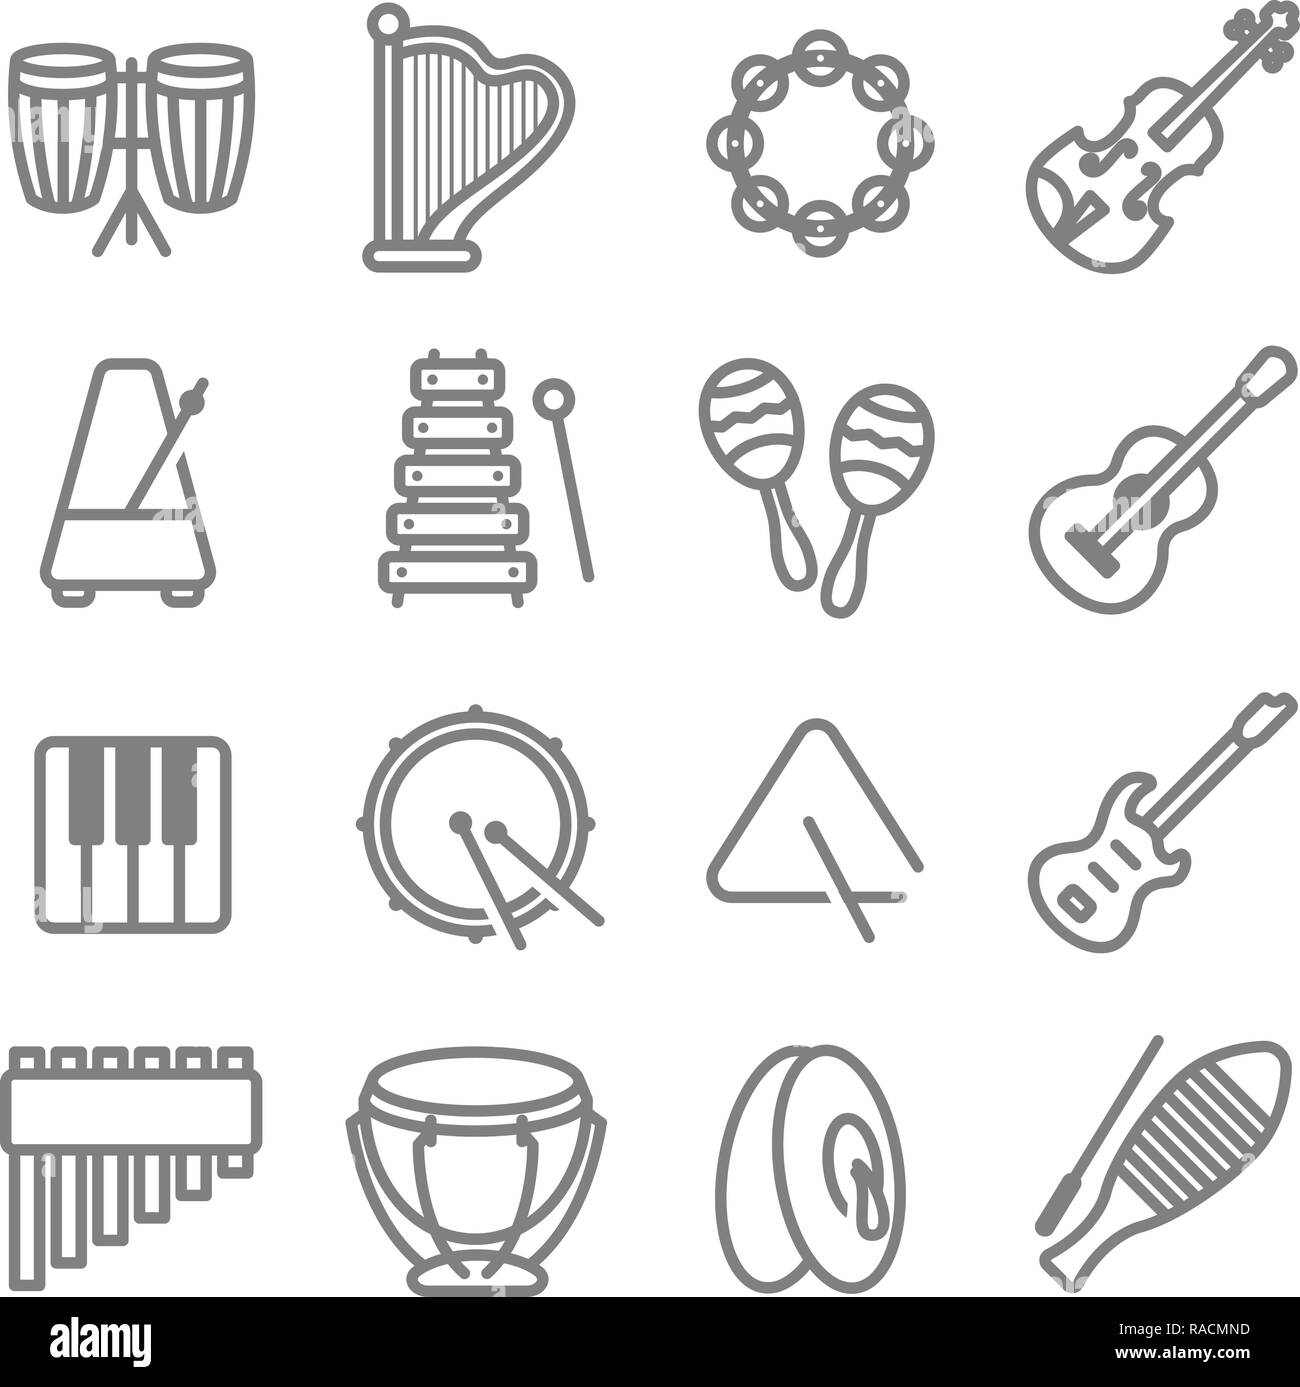 Music Instrument Vector Line Icon Set. Contains such Icons as Drum, Triangle, Guitar, Keyboard, Metronome, Tambourine and more. - Stock Image